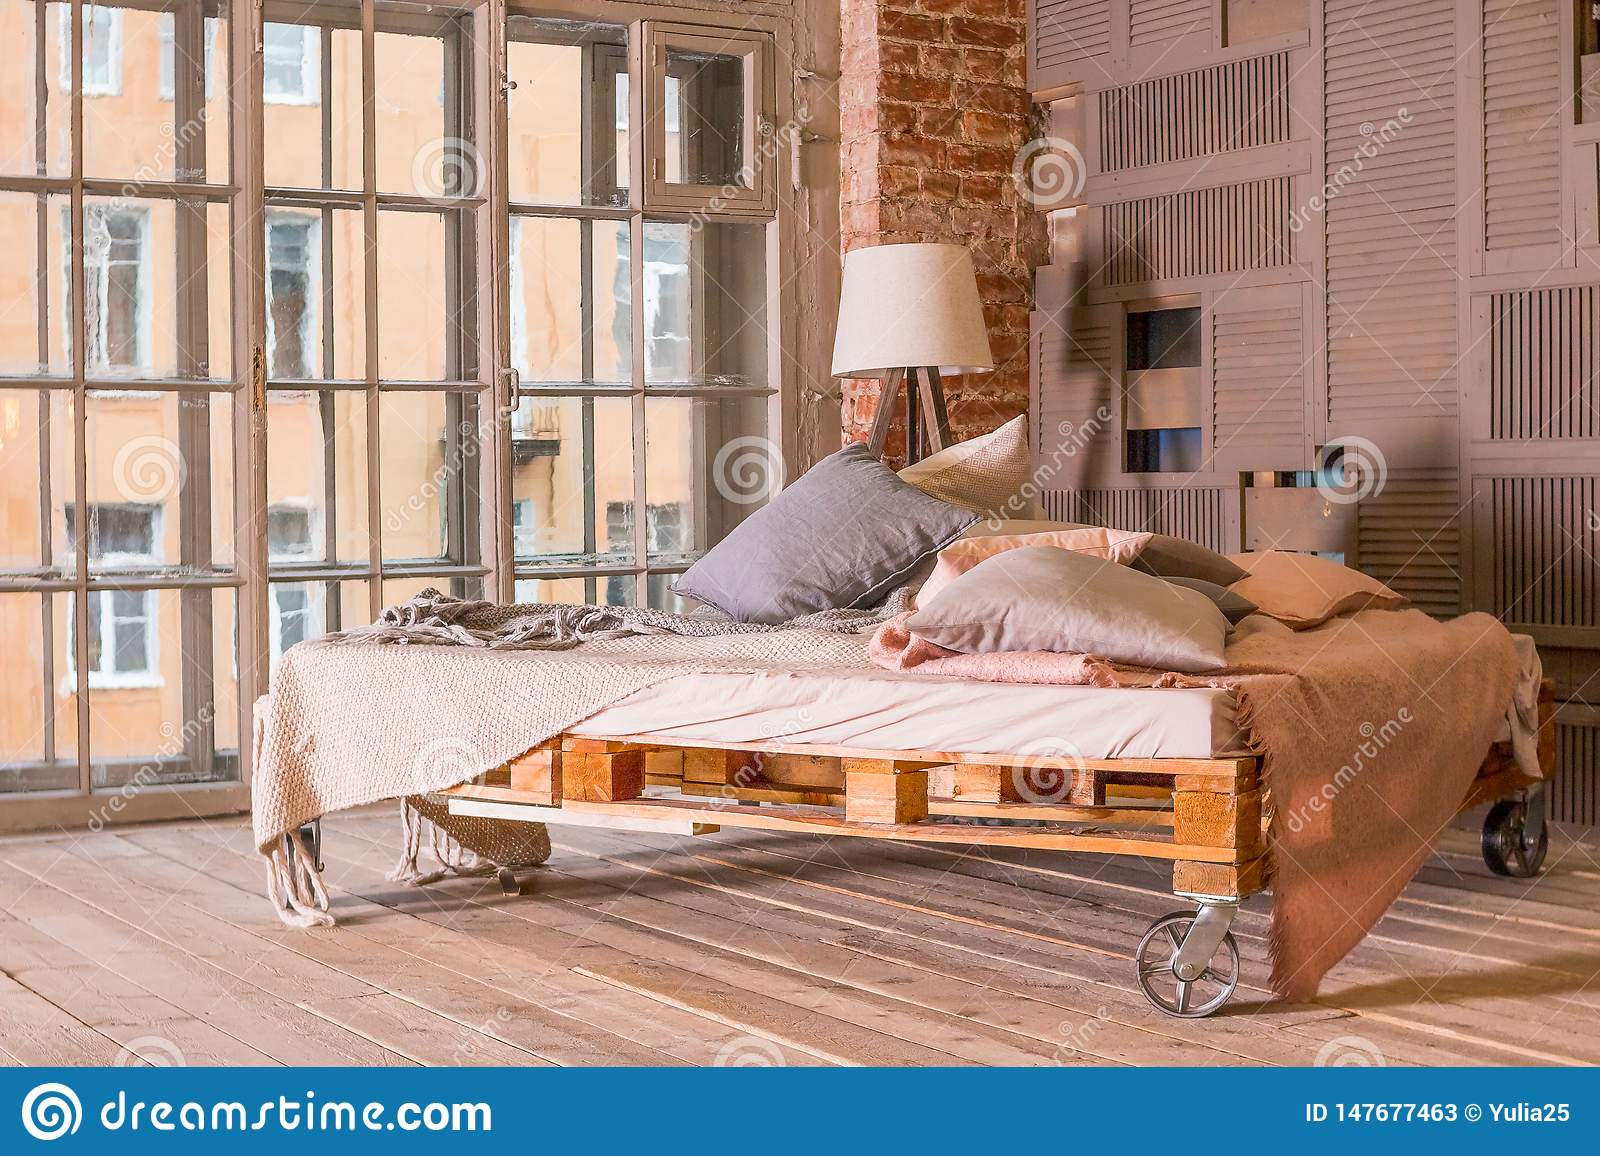 Loft Apartment Interior Minimalist Interior With Simple Wooden Bed Lamp White Bedding Pastel Colors Big Window Cozy Stock Image Image Of Black Contemporary 147677463